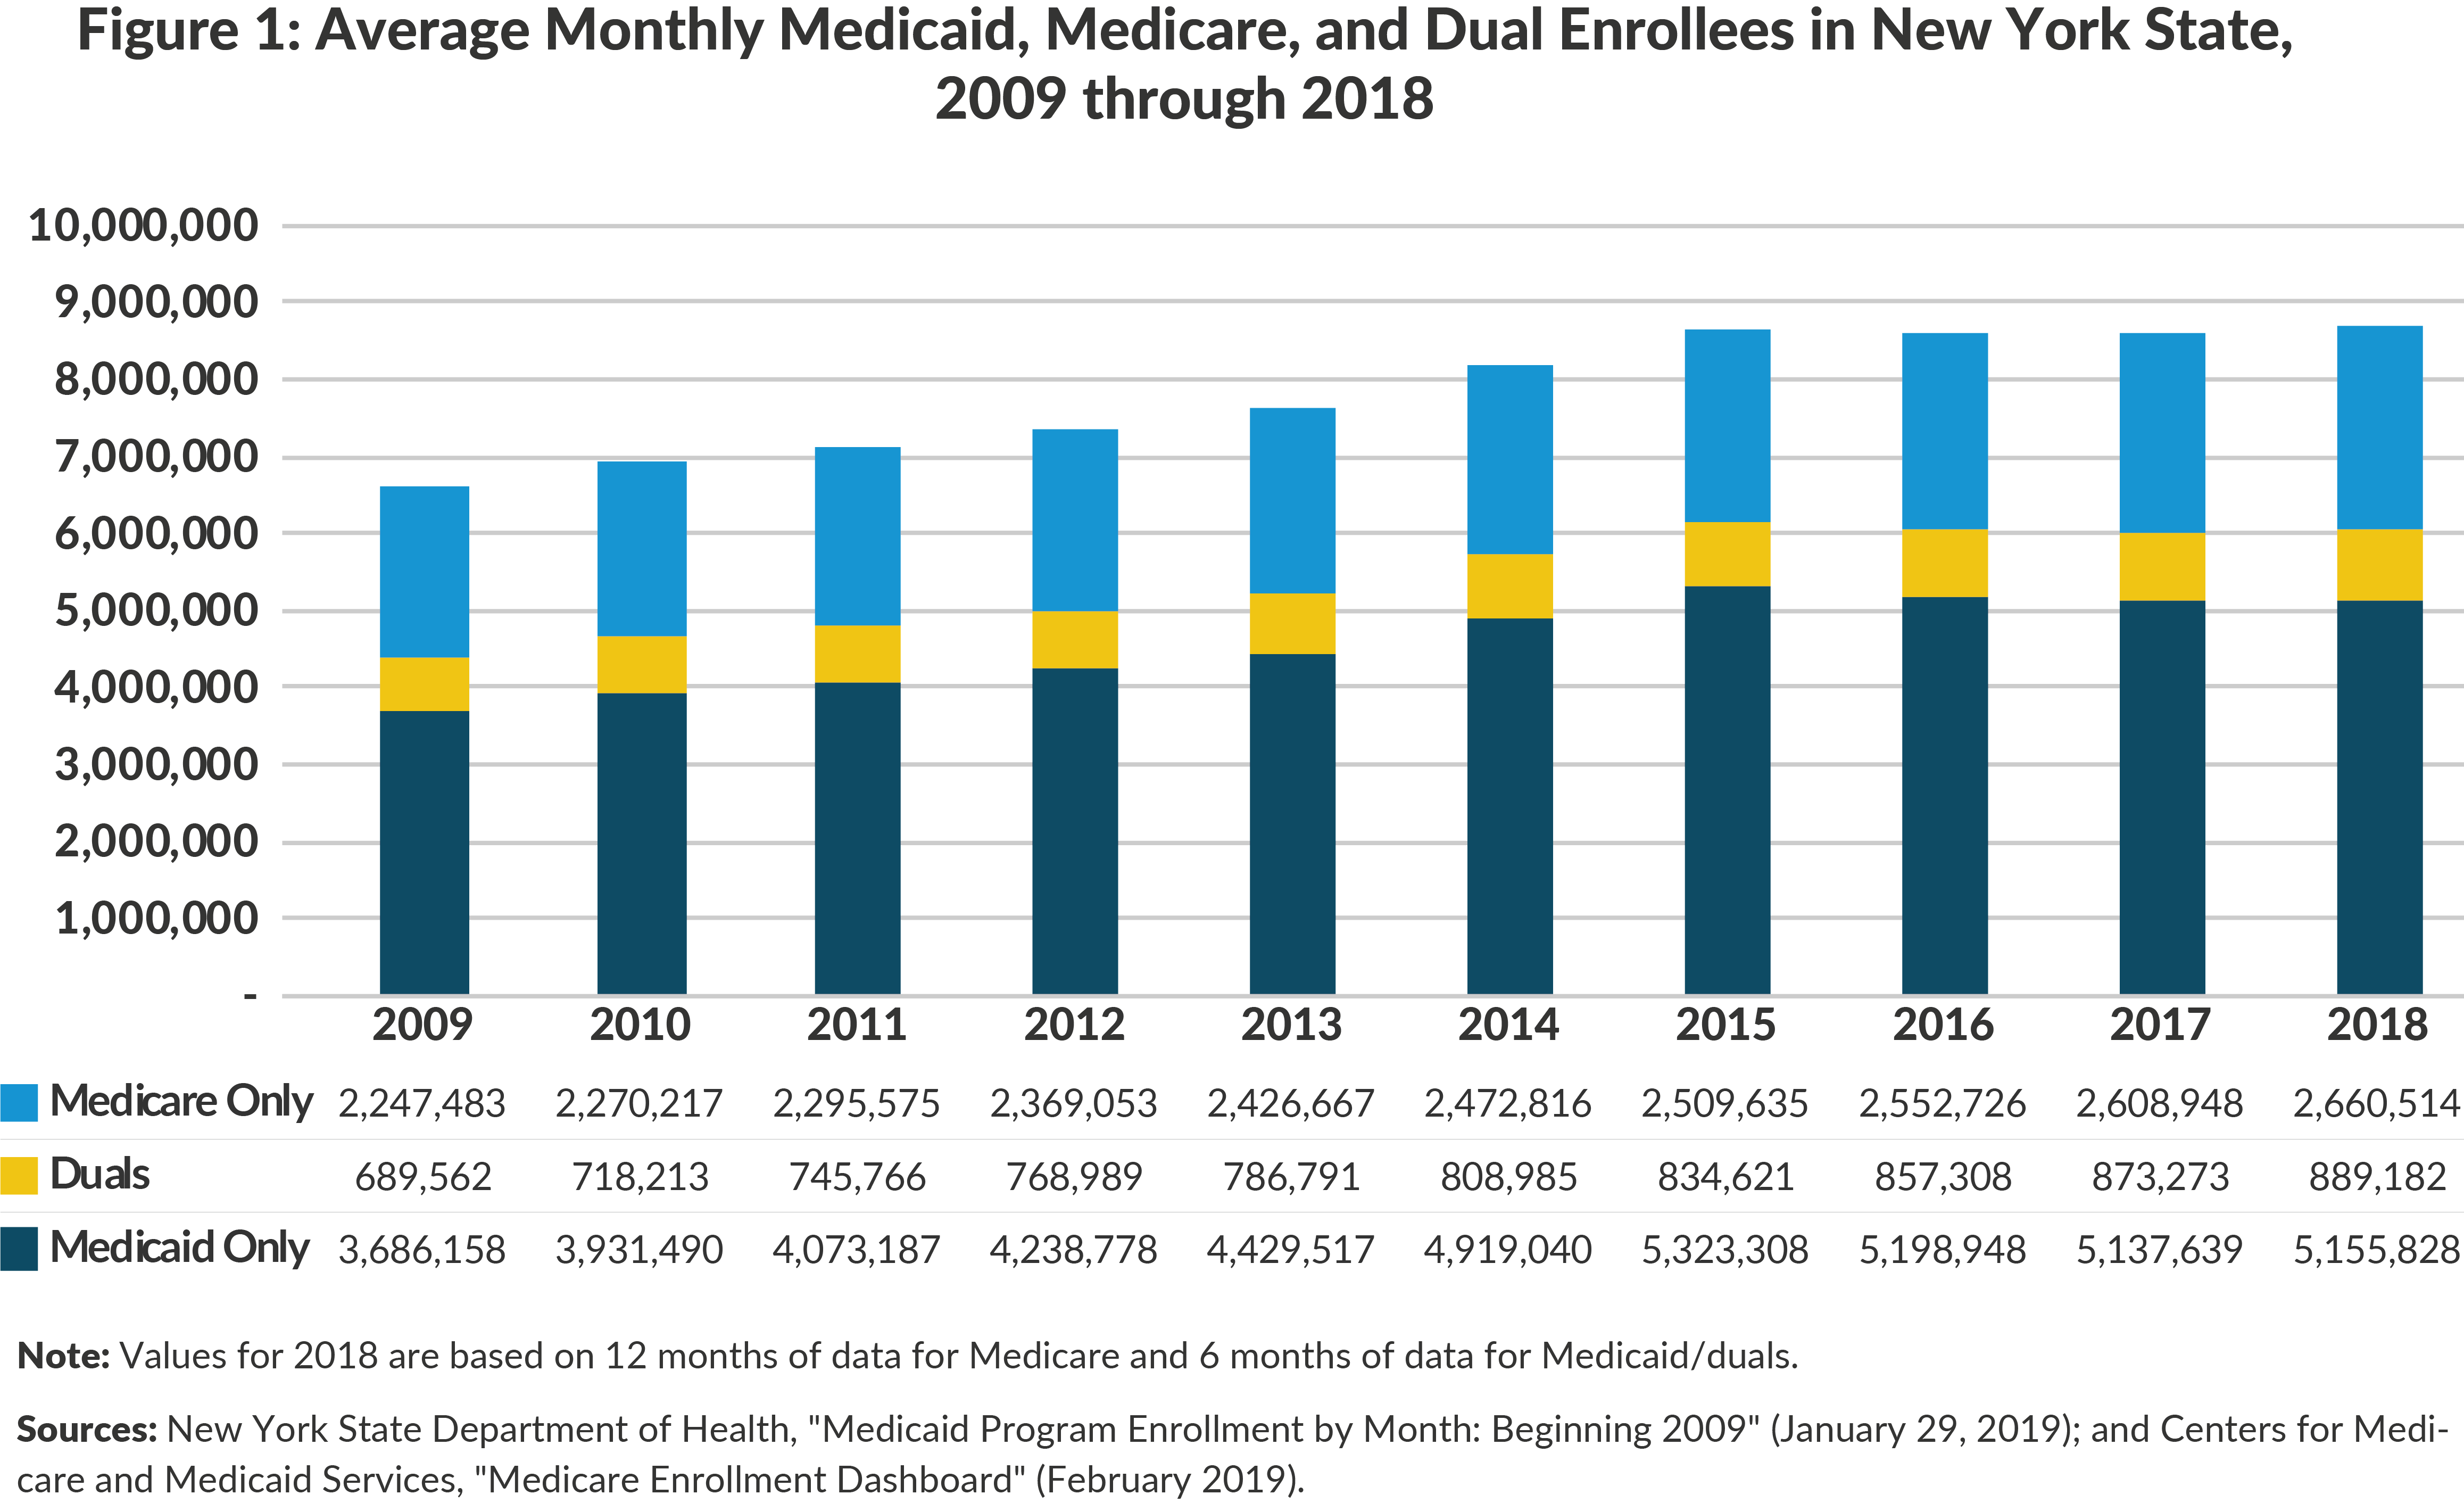 Figure 1: Average Monthly Medicaid, Medicare, and Dual Enrollees in New York State, 2009 through 2018